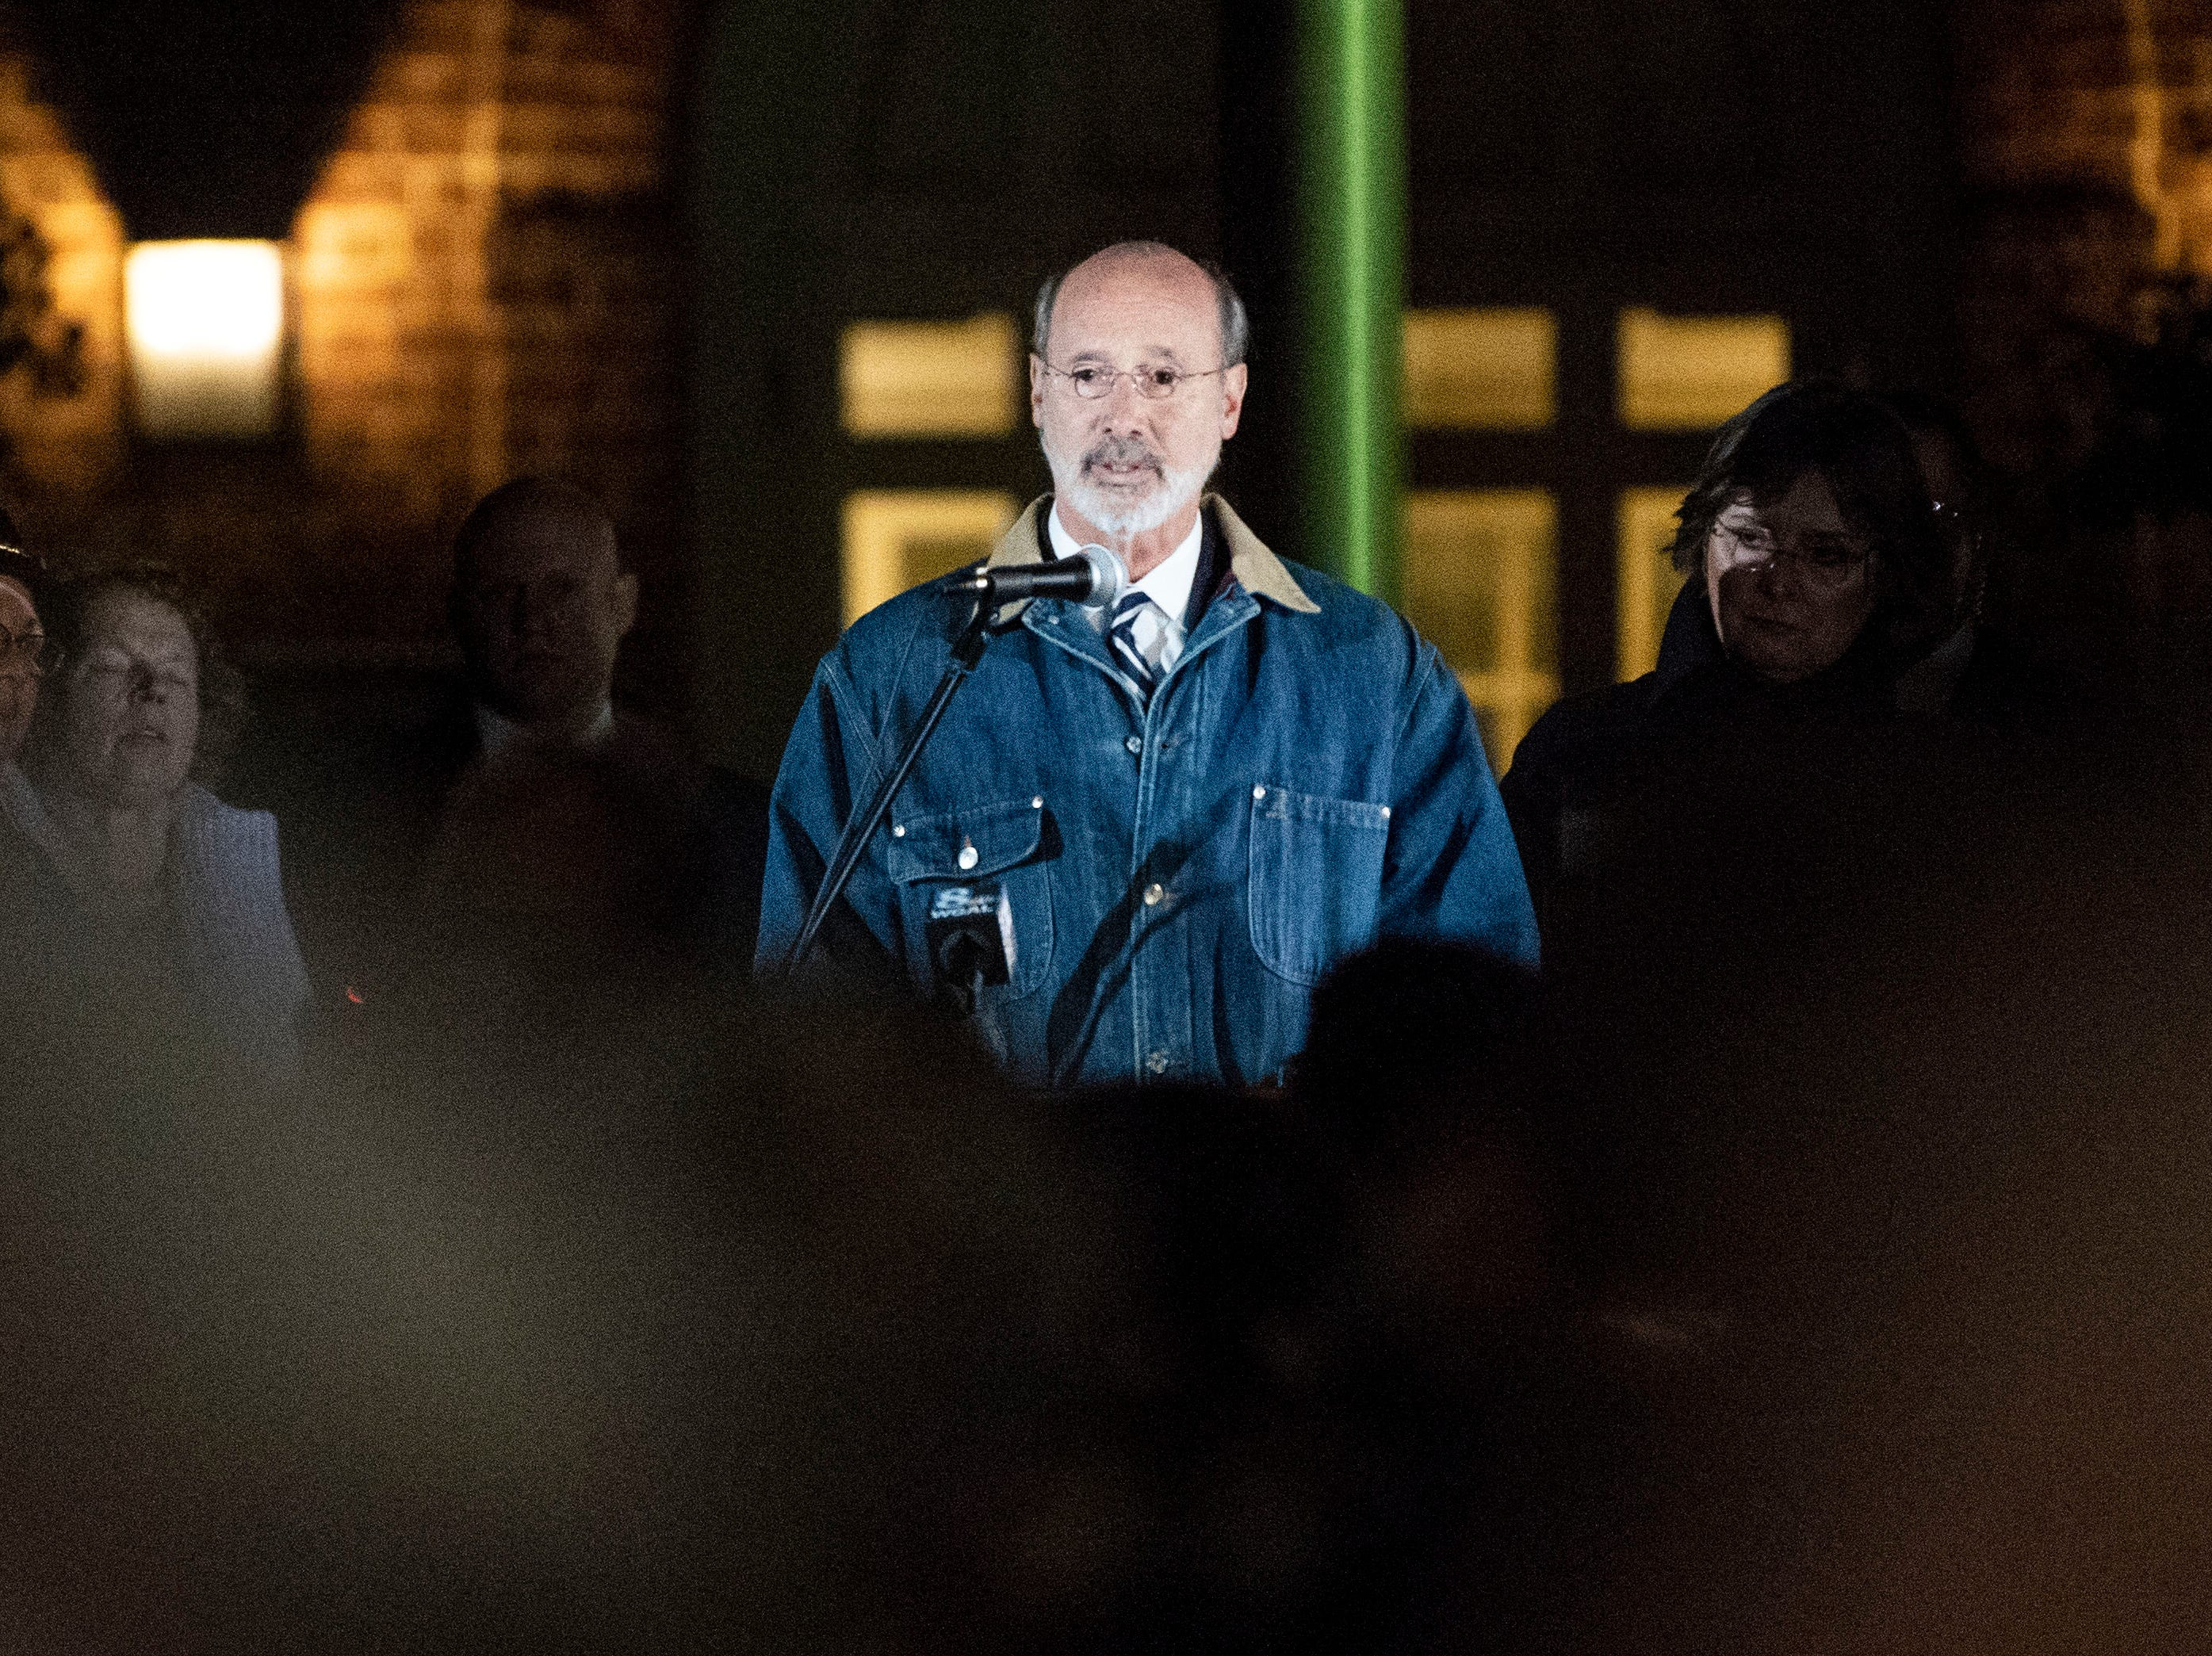 Gov. Tom Wolf speaks  Frances Wolfduring a candlelight vigil in front of city hall while First Lady Frances Wolf looks on, Monday, Oct. 29, 2018. Hundreds of people gathered for the 'York Vigil against Hate,' mourning the 11 dead from the weekend shooting at Tree of Life synagogue in Pittsburgh.